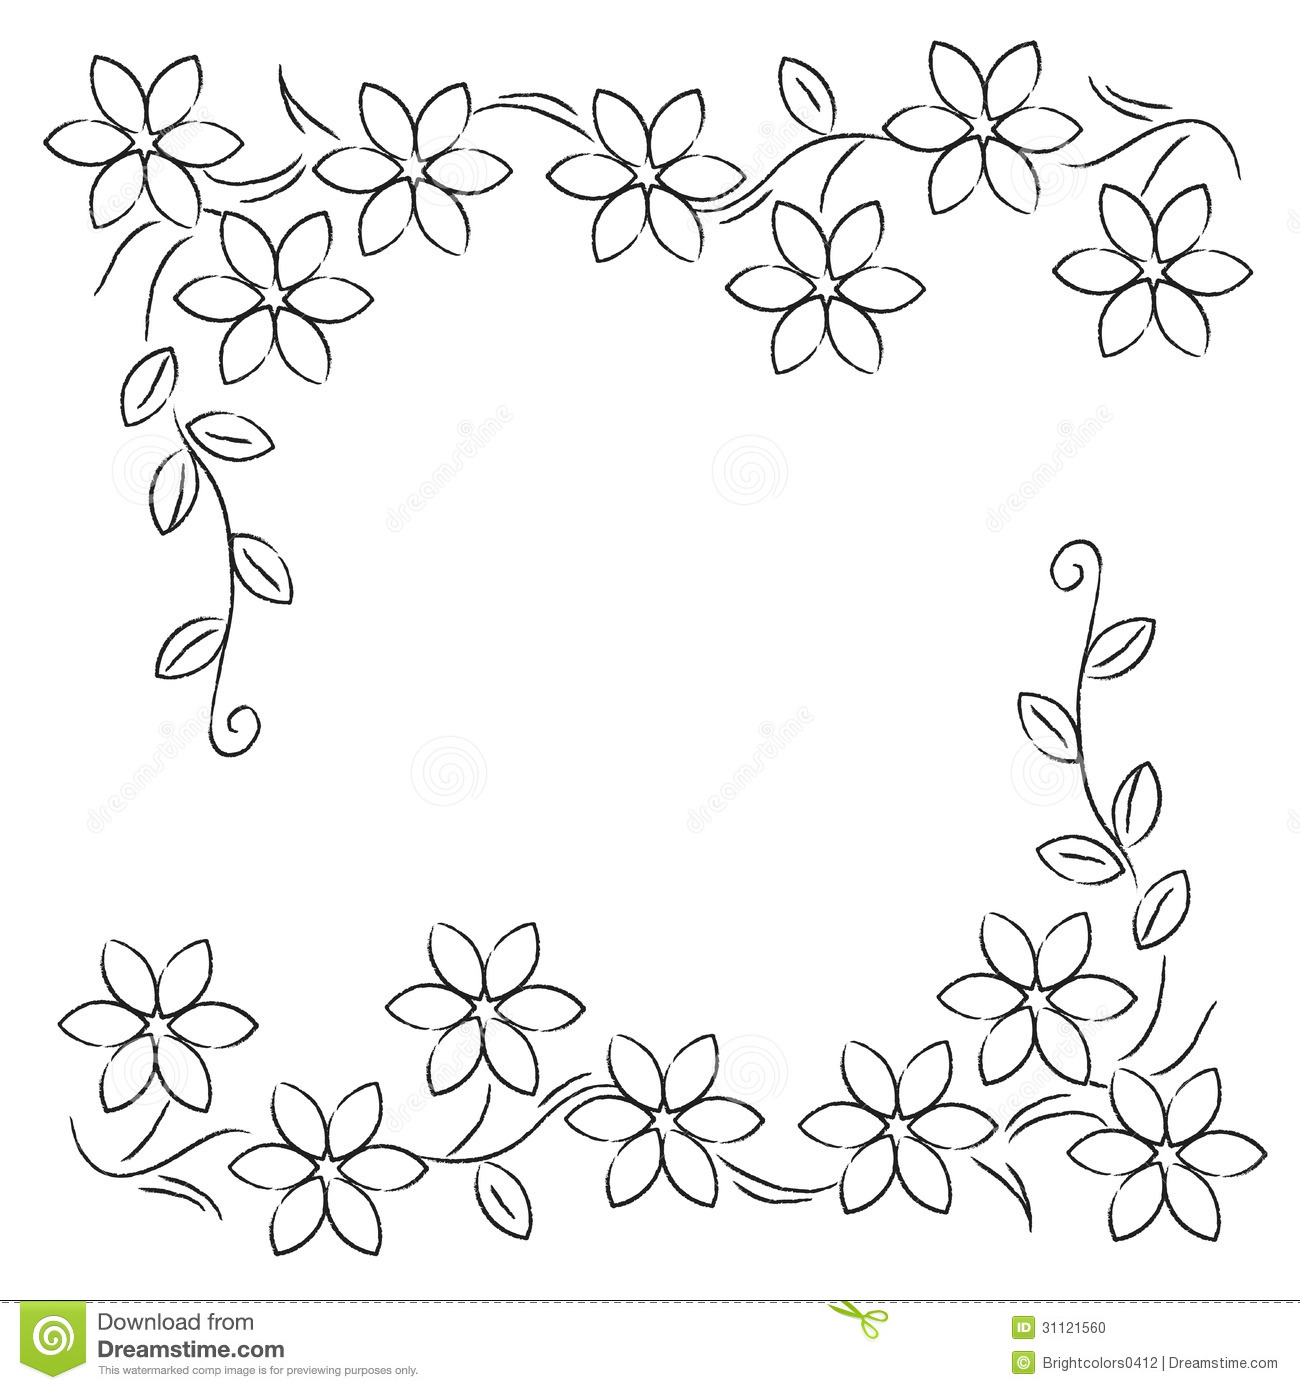 Flower Line Border Black White Stock Photo - Image: 31121560